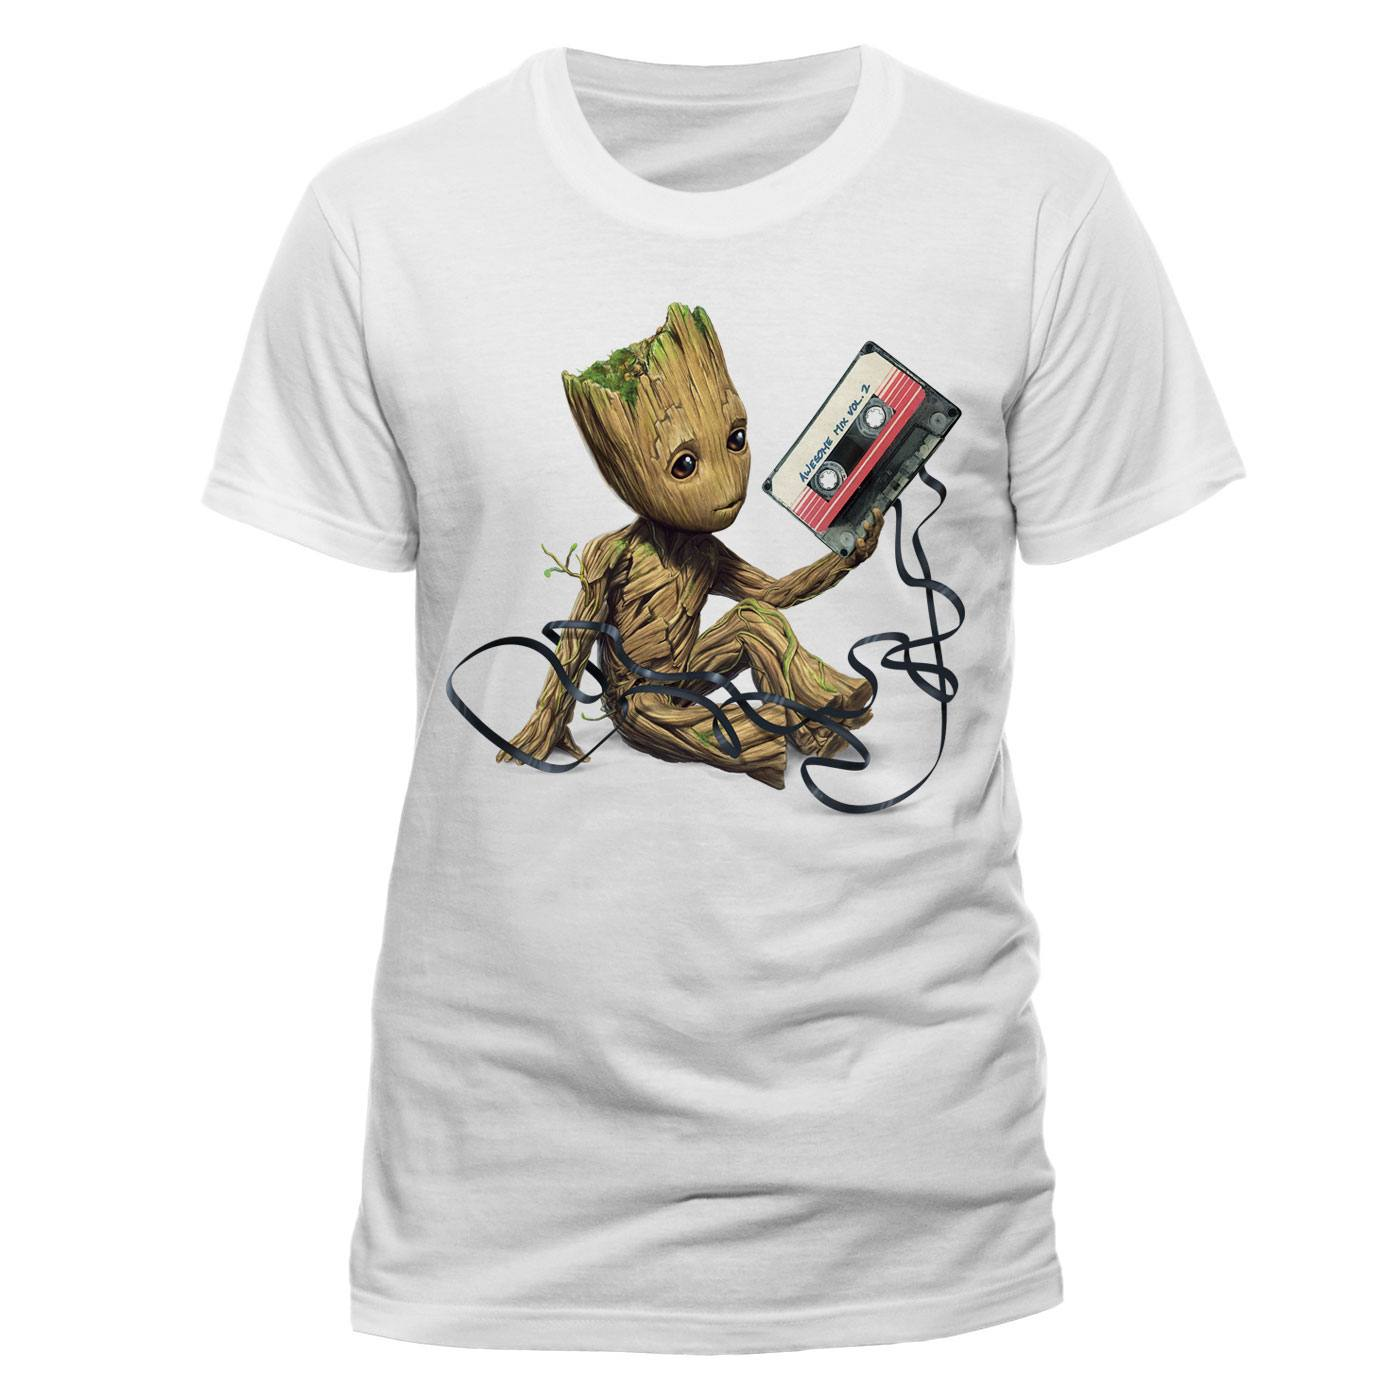 Guardians of the Galaxy 2 T-Shirt Groot & Tape Size M